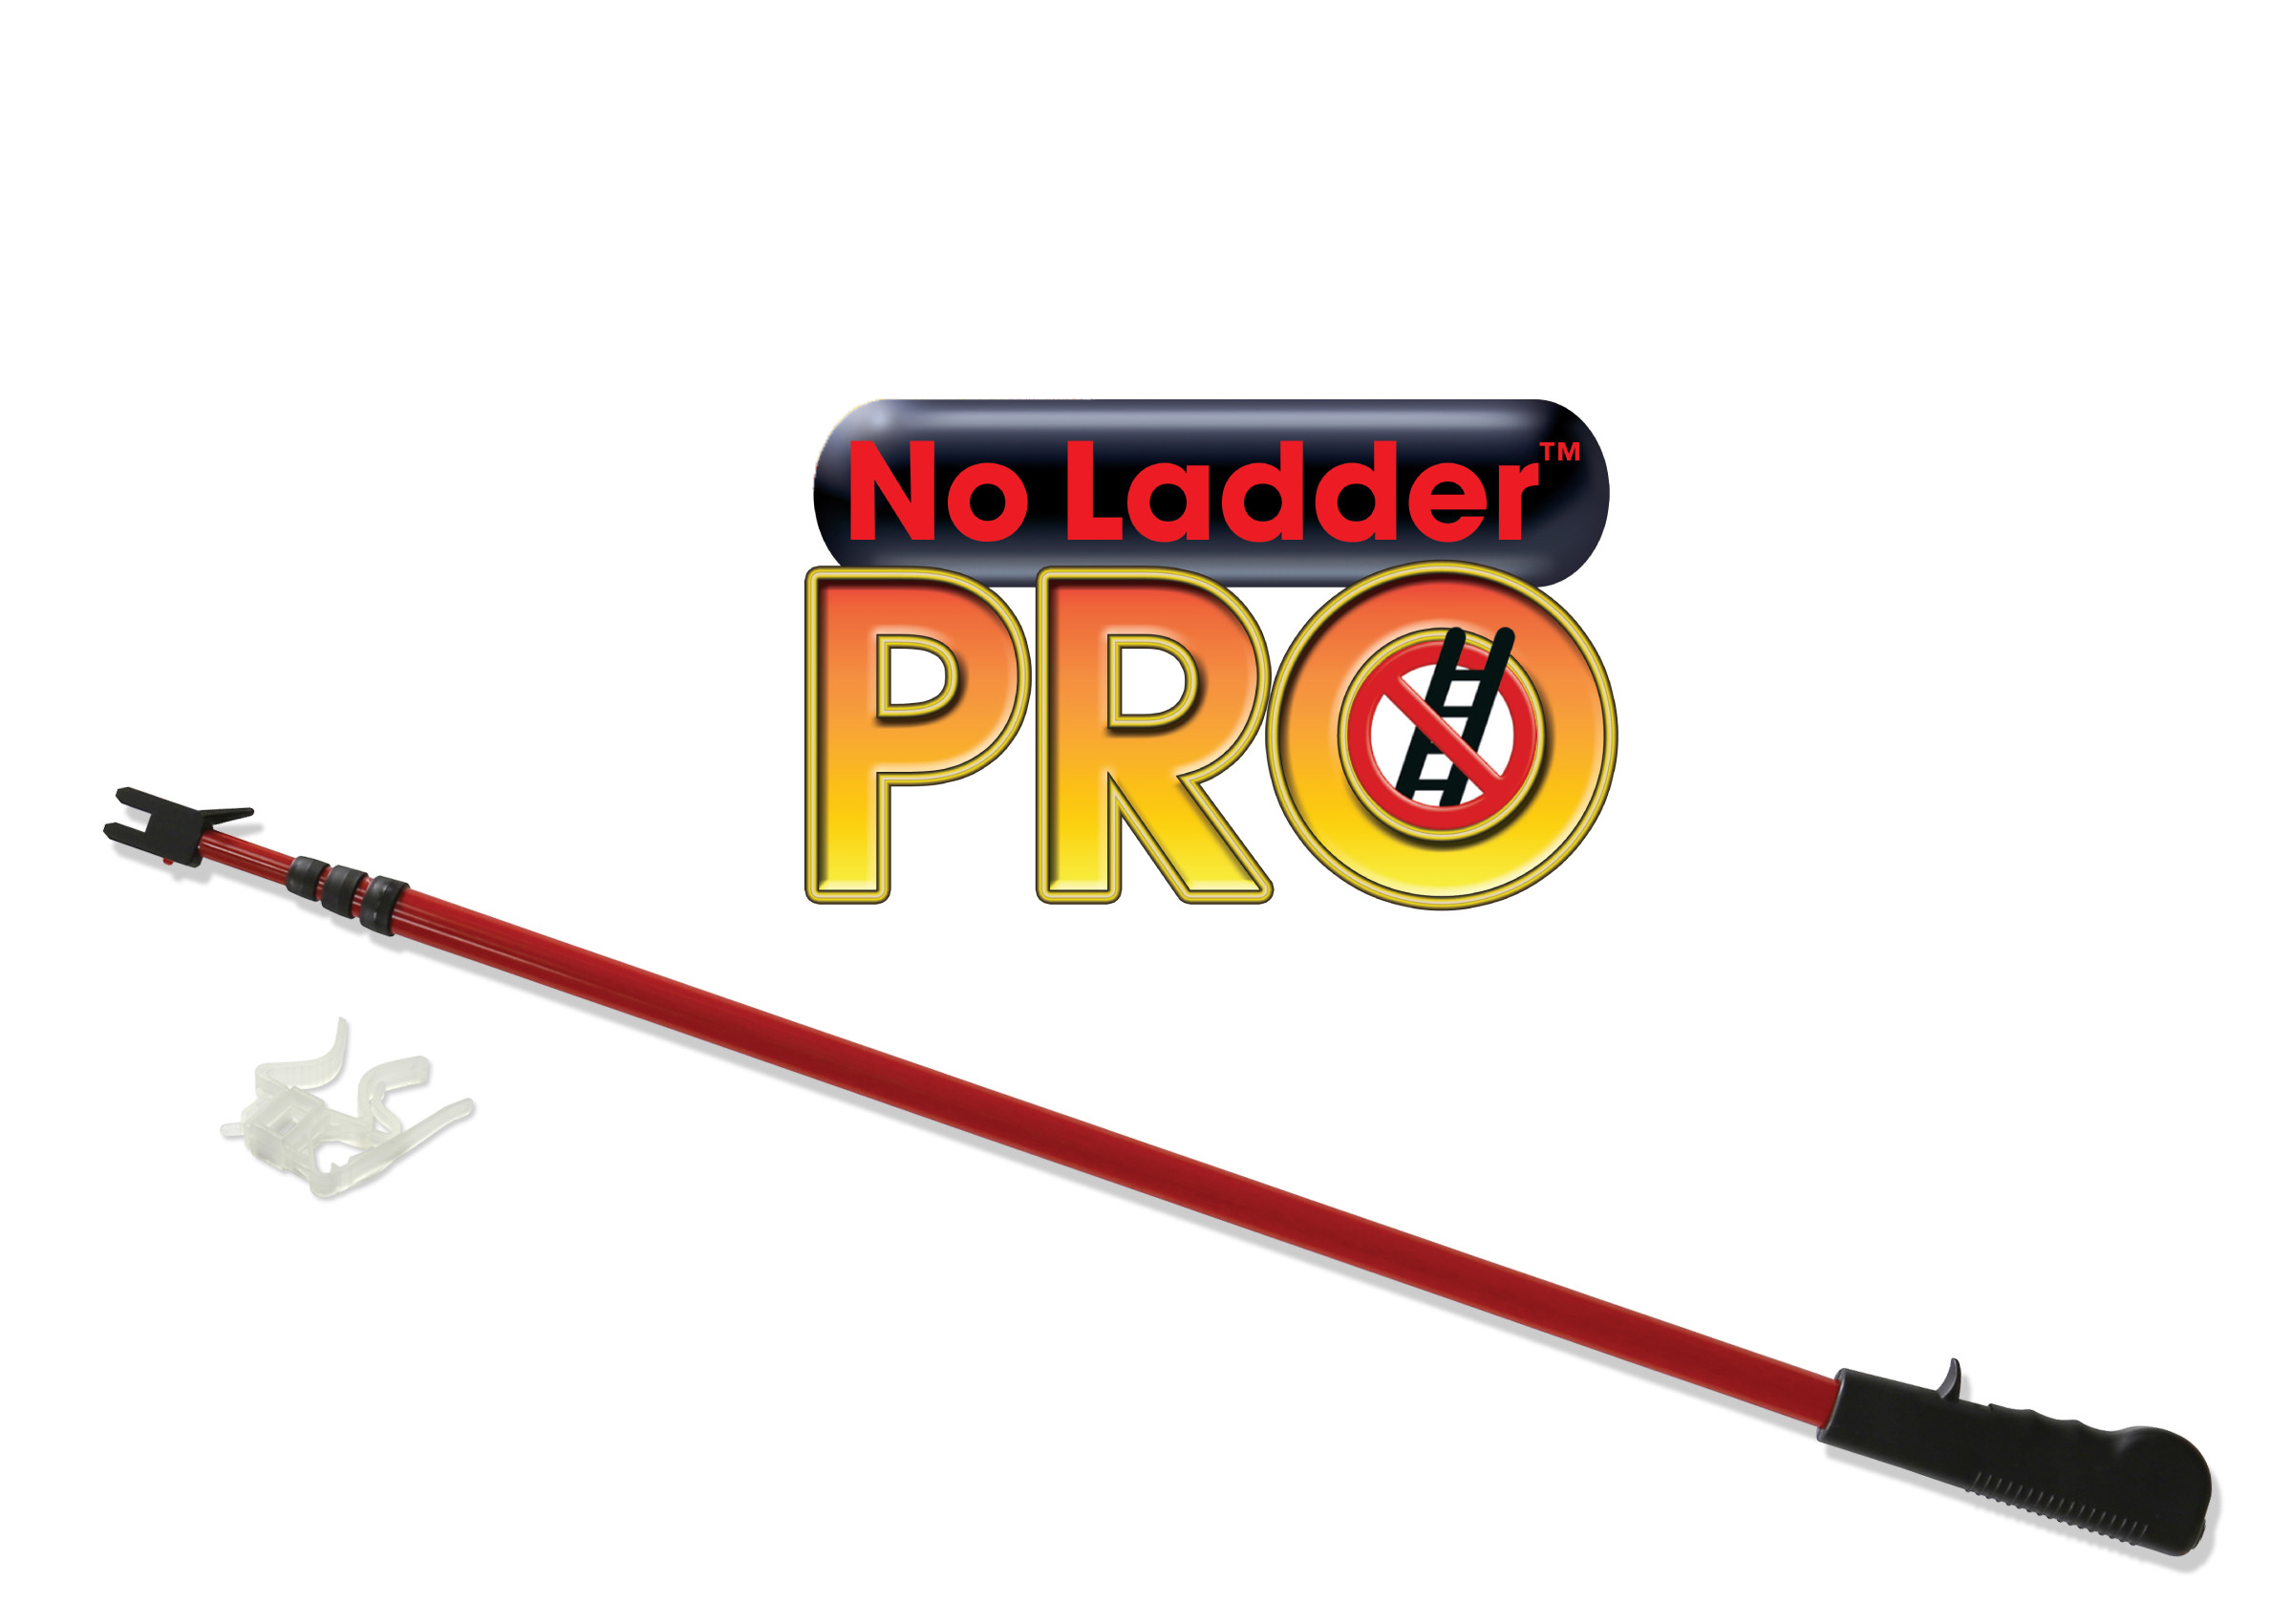 NEW DYNO NO LADDER PRO LIGHT HANGING KIT WITH RAPID RELEASE CLIPS